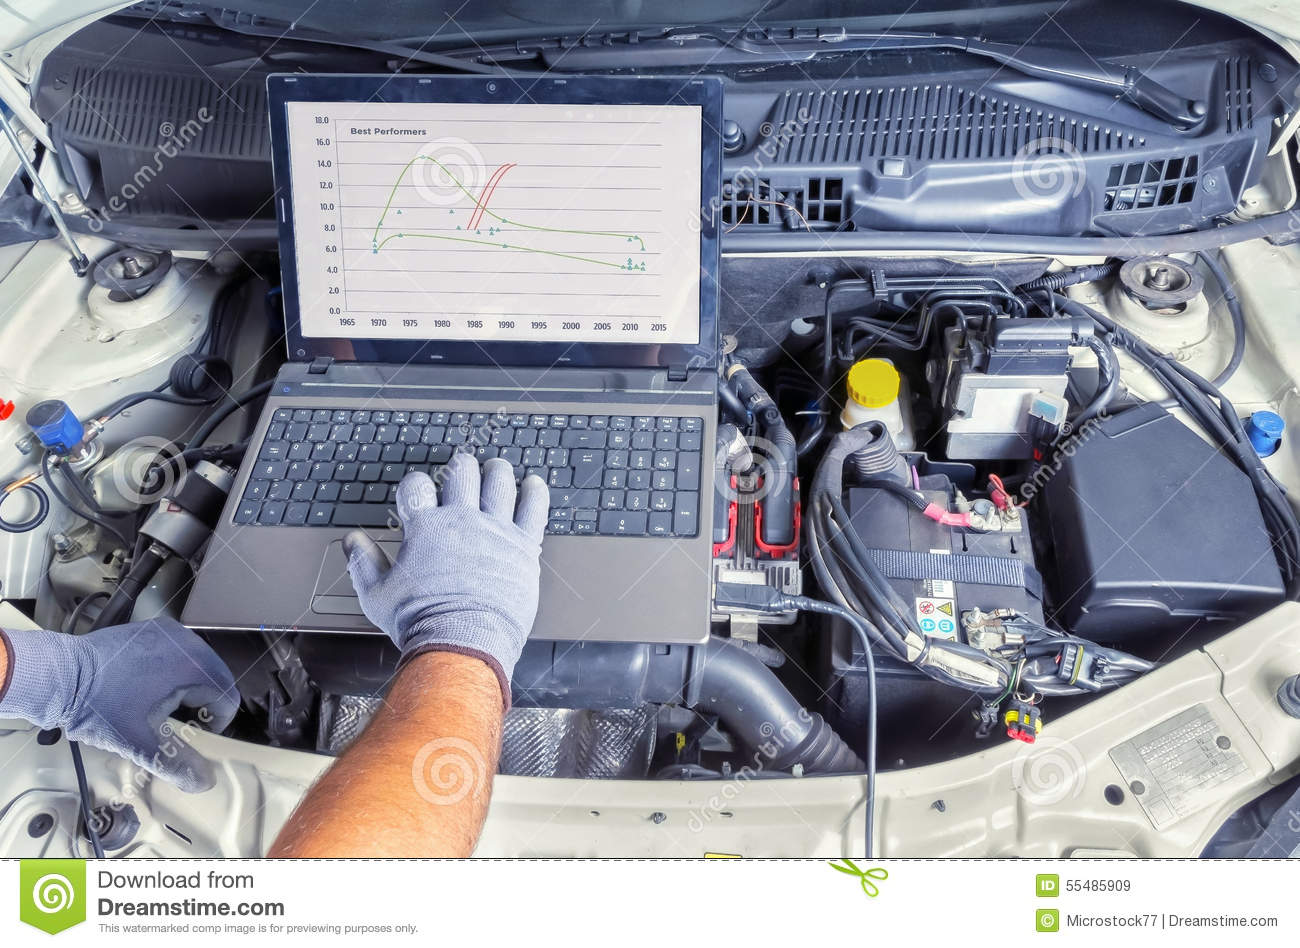 Diagnostic Auto as well Werf Met Onbeperkte Mogelijkheden also Differential Repair Service Lakewood furthermore Repair Timescales likewise Terex Fermec Repair Manuals. on electrical repair service